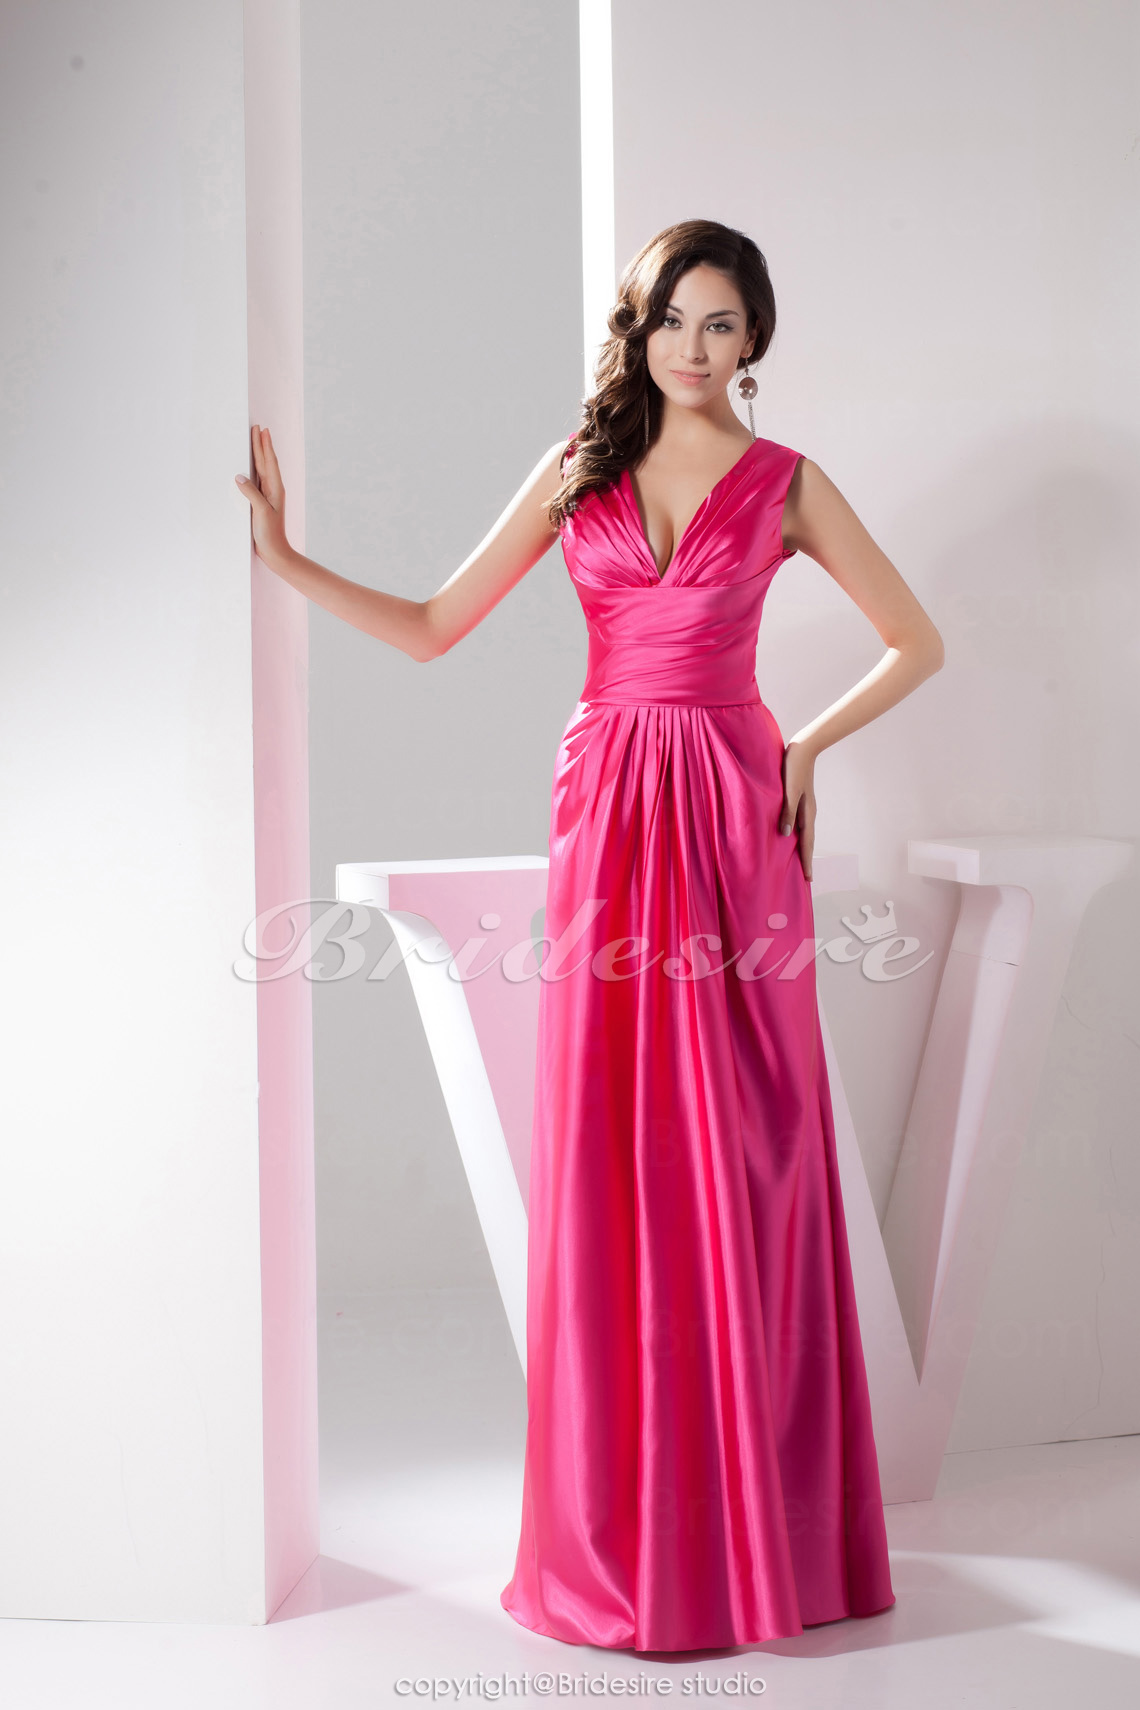 A-line V-neck Floor-length Sleeveless Satin Bridesmaid Dress